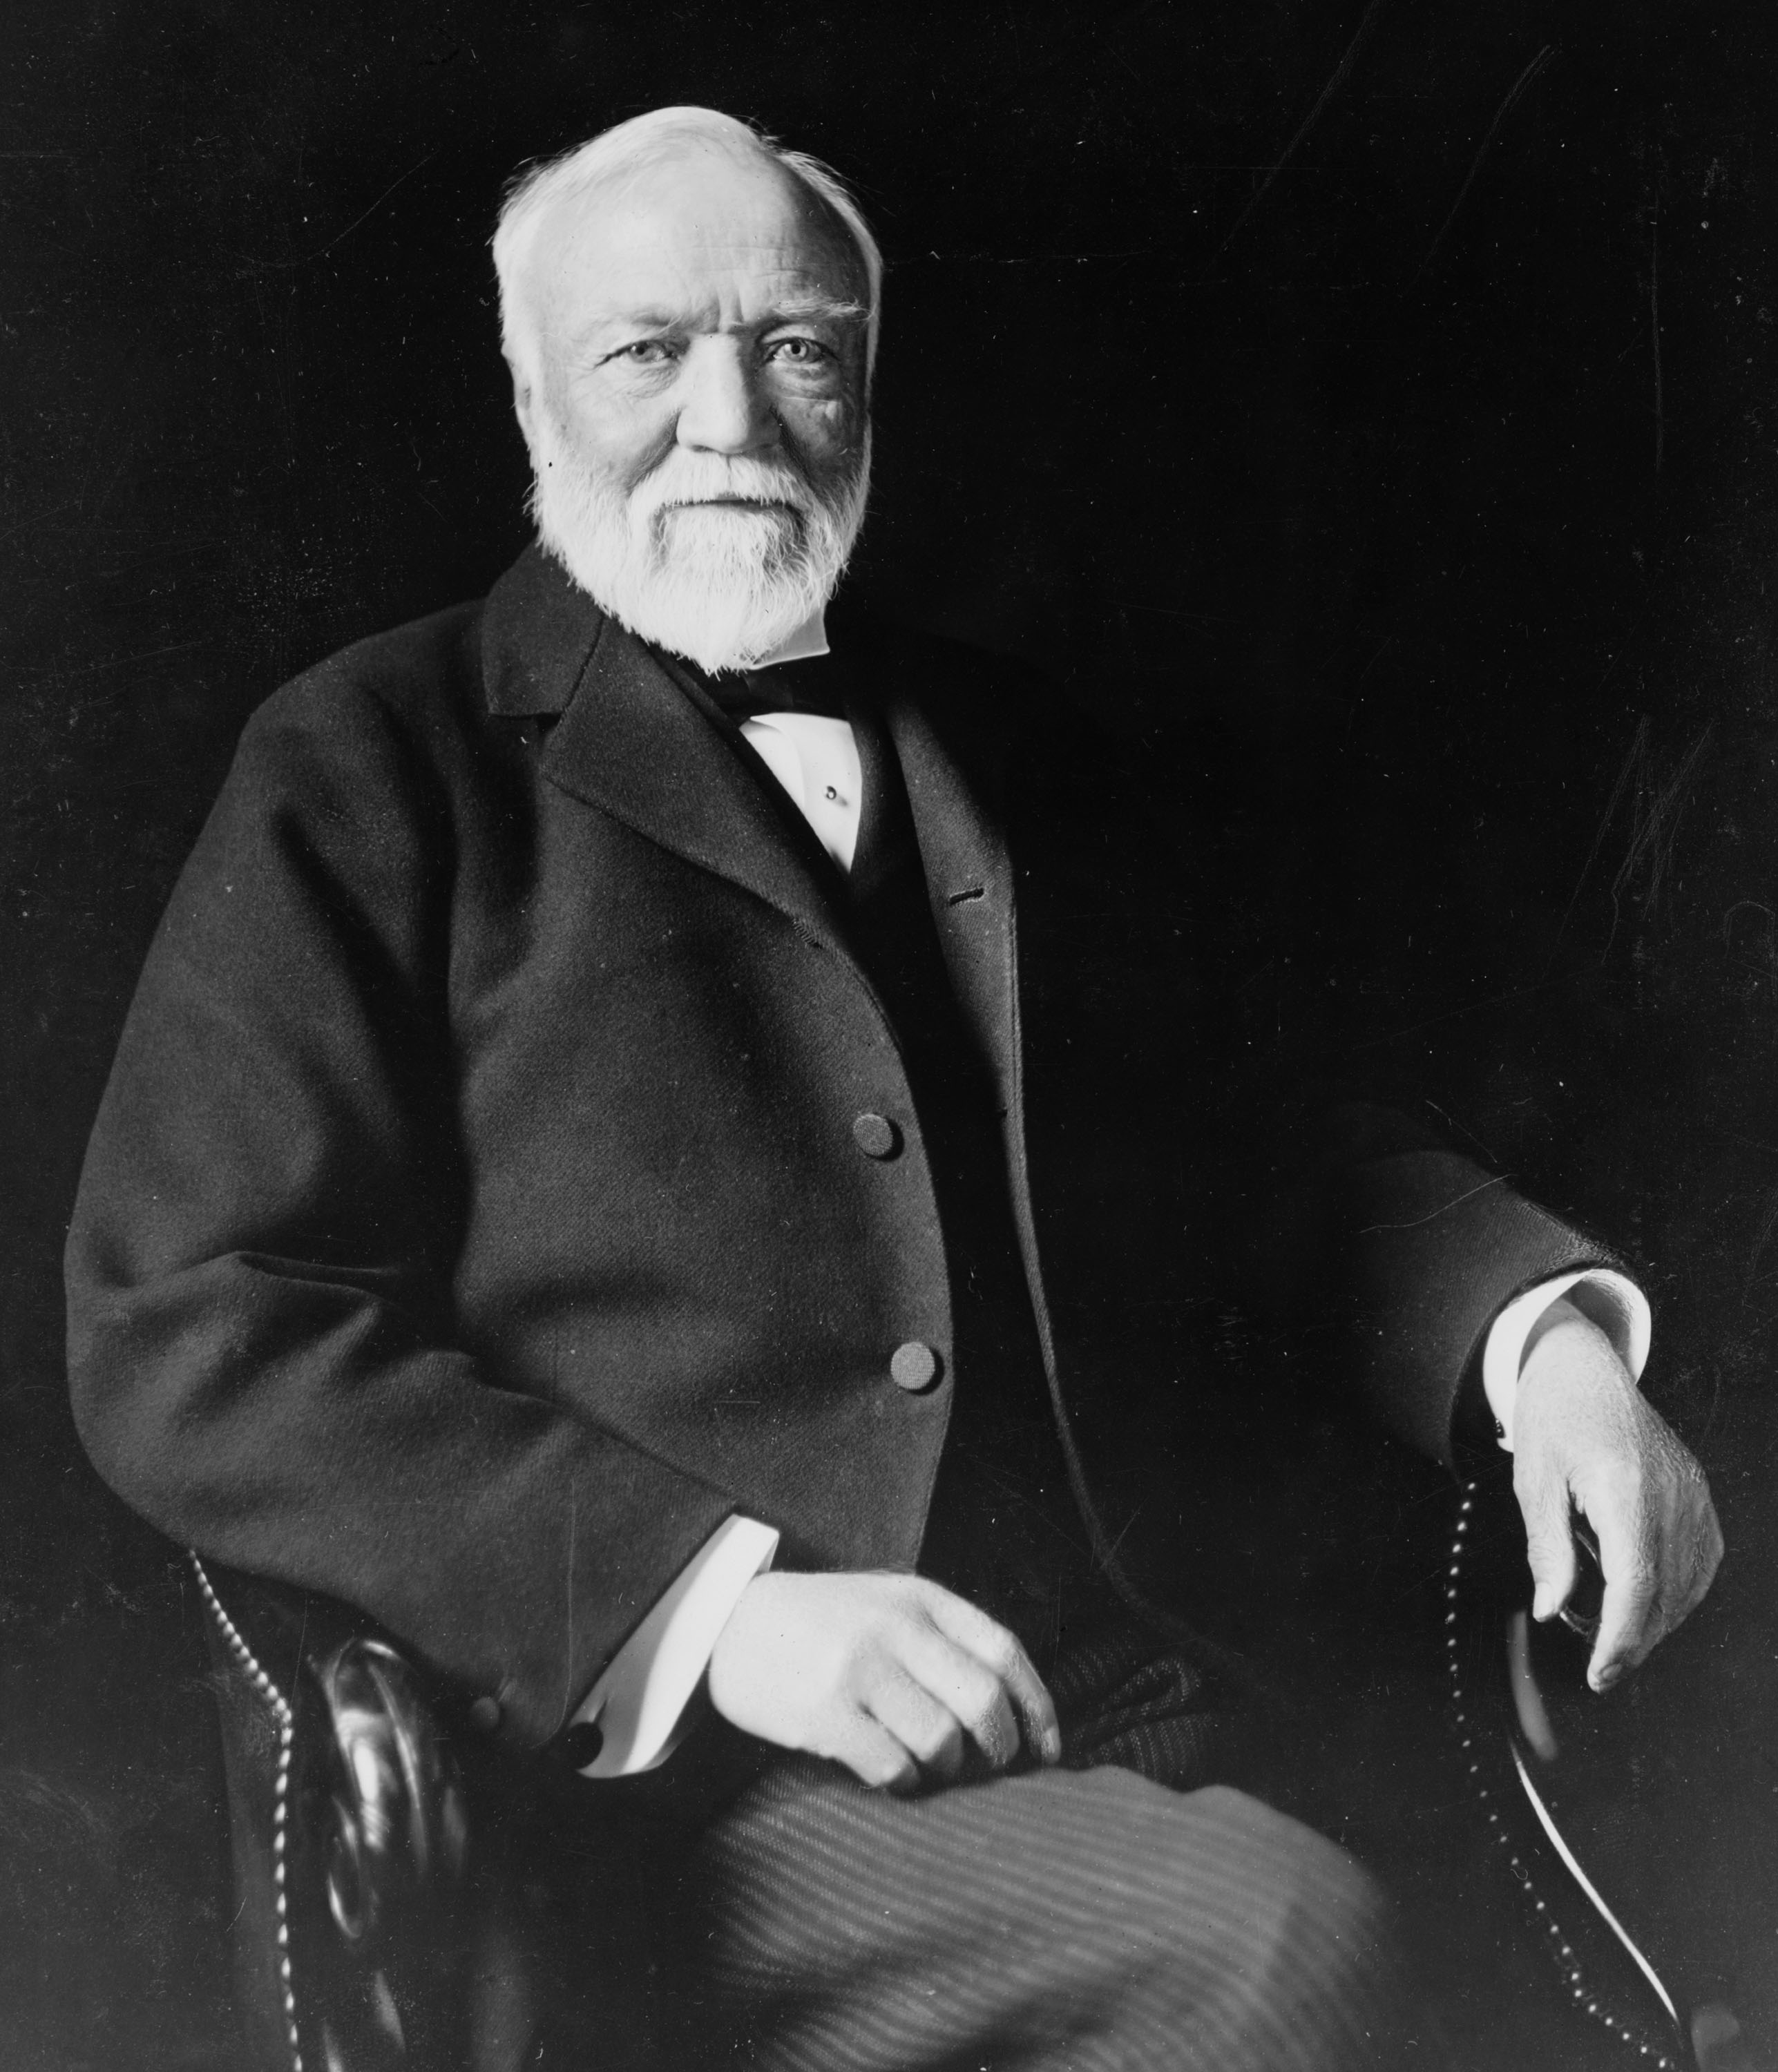 http://upload.wikimedia.org/wikipedia/commons/archive/b/b5/20061203212743!Andrew_Carnegie,_three-quarter_length_portrait,_seated,_facing_slightly_left,_1913.jpg